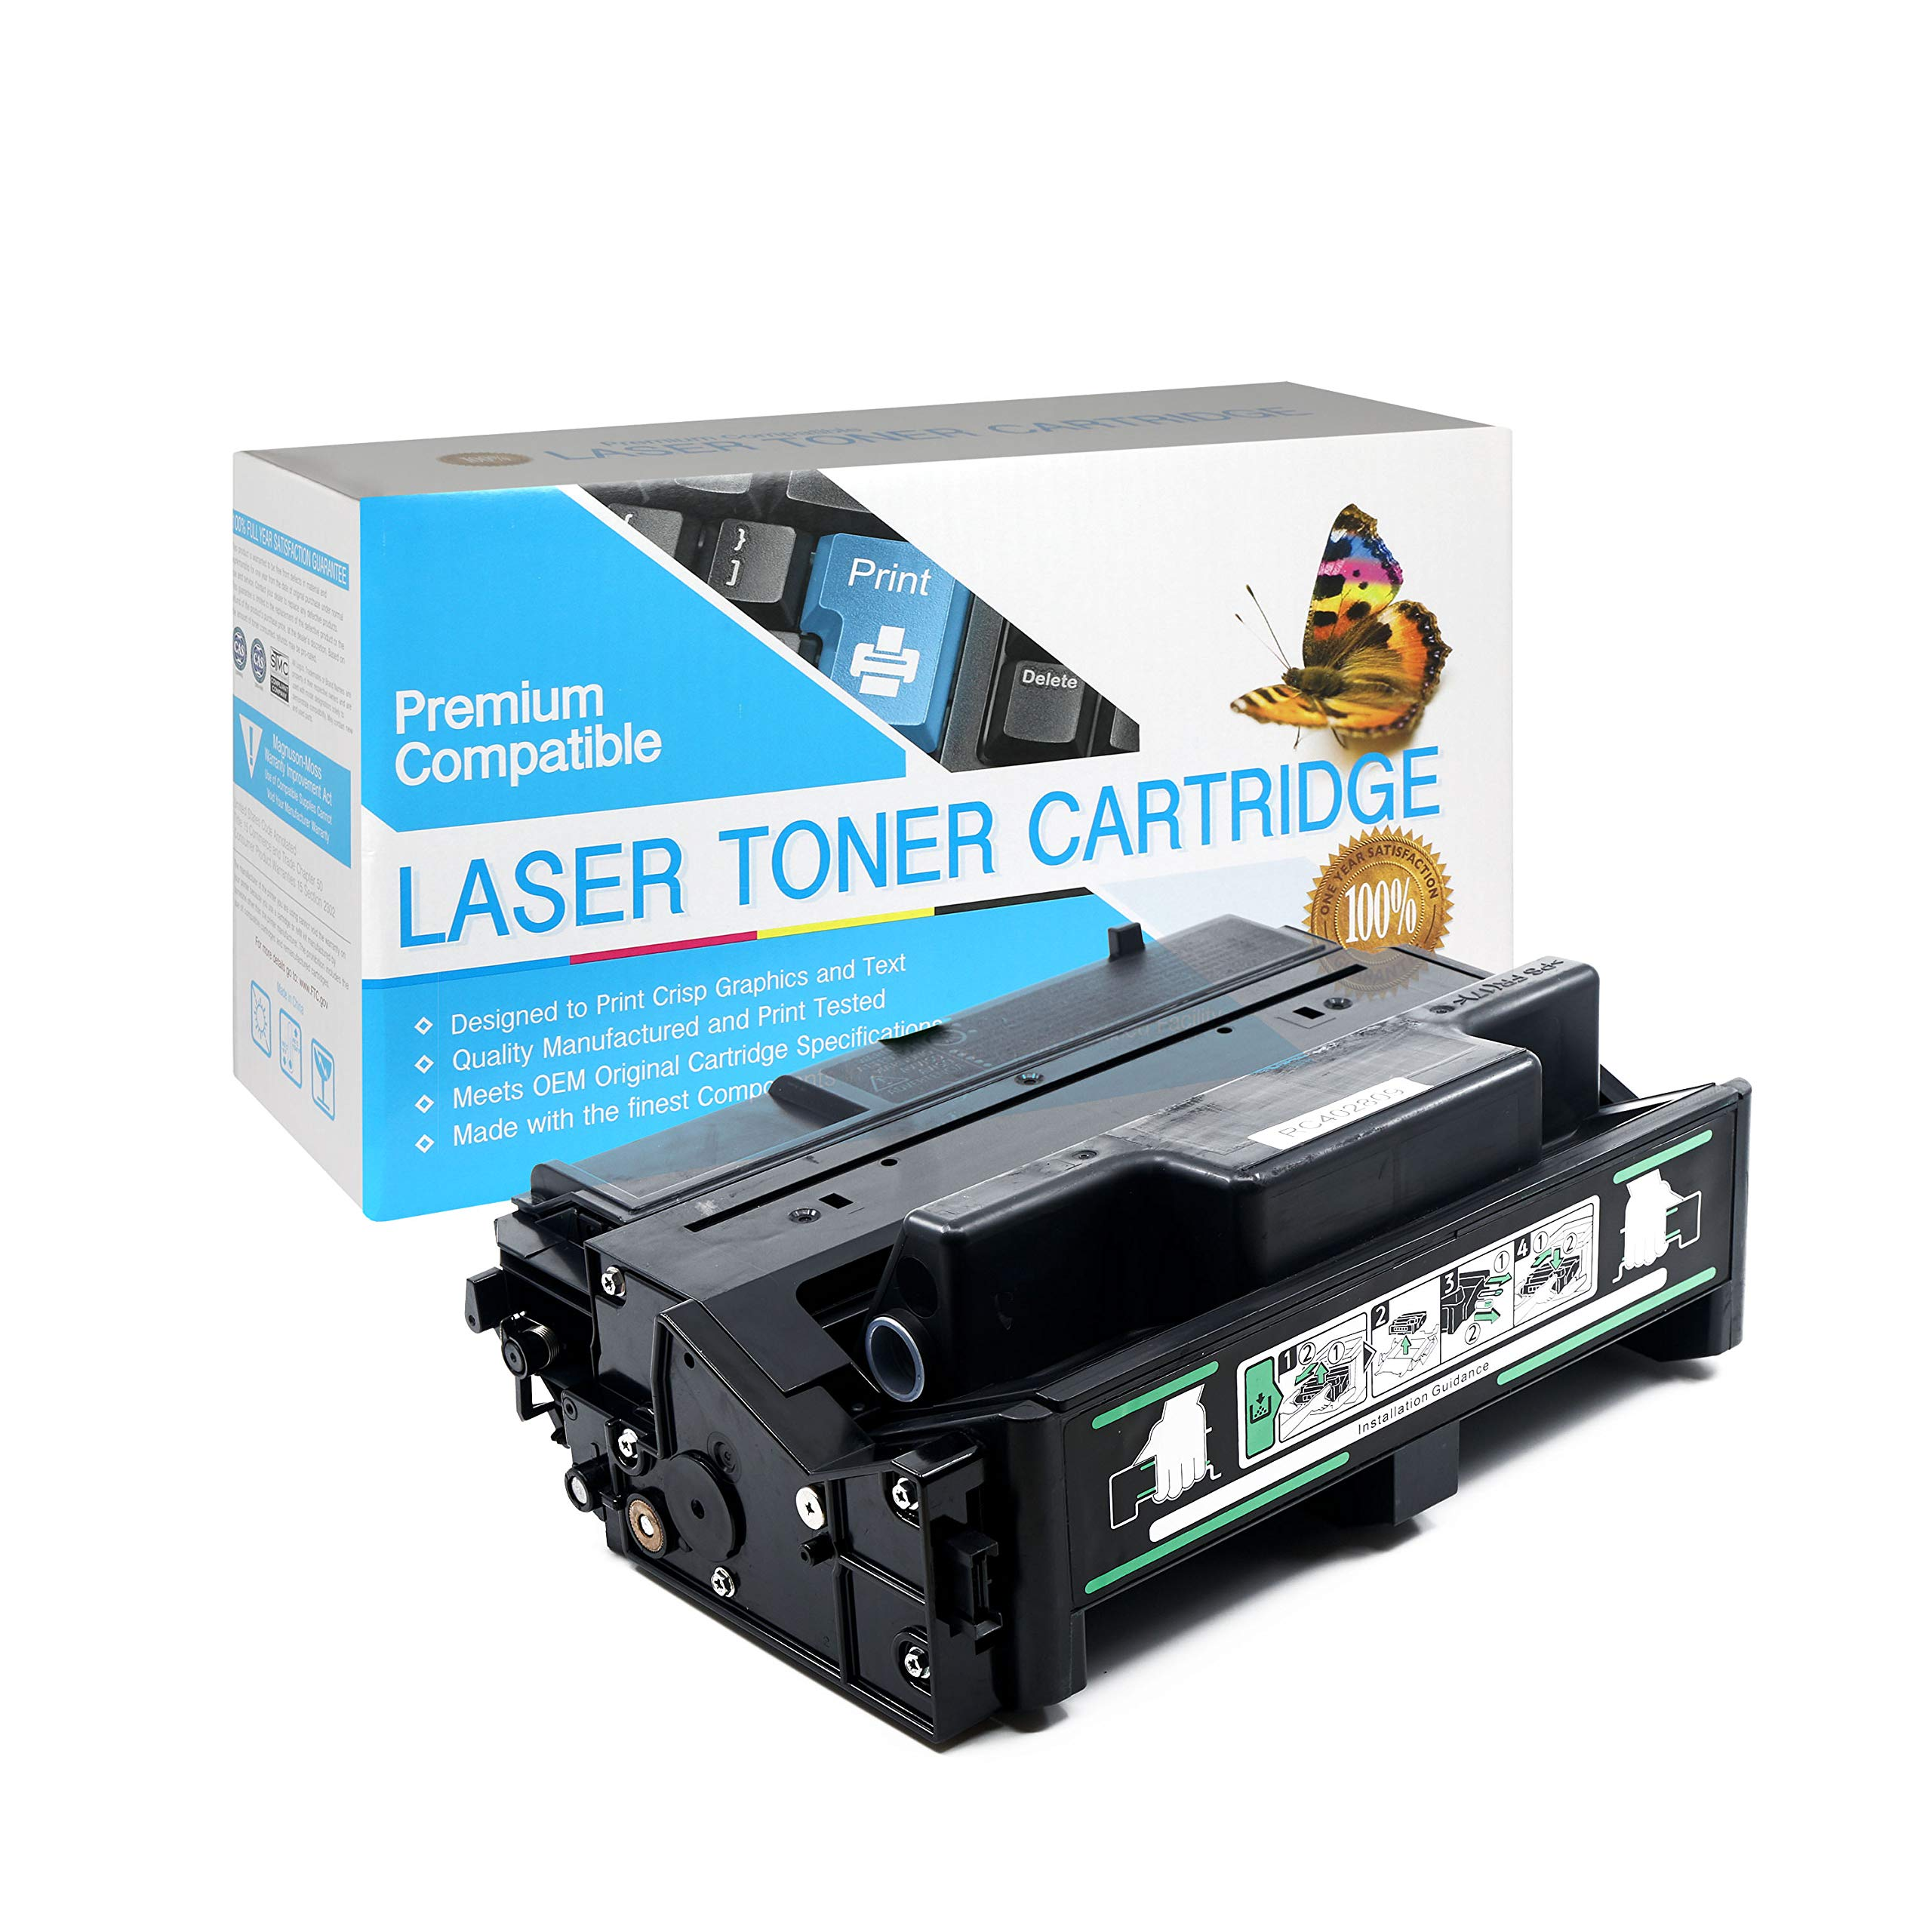 SuppliesOutlet Remanufactured Toner Cartridge Replacement for Ricoh Type 120/402809 / 406997 (High Yield Black,1 Pack)